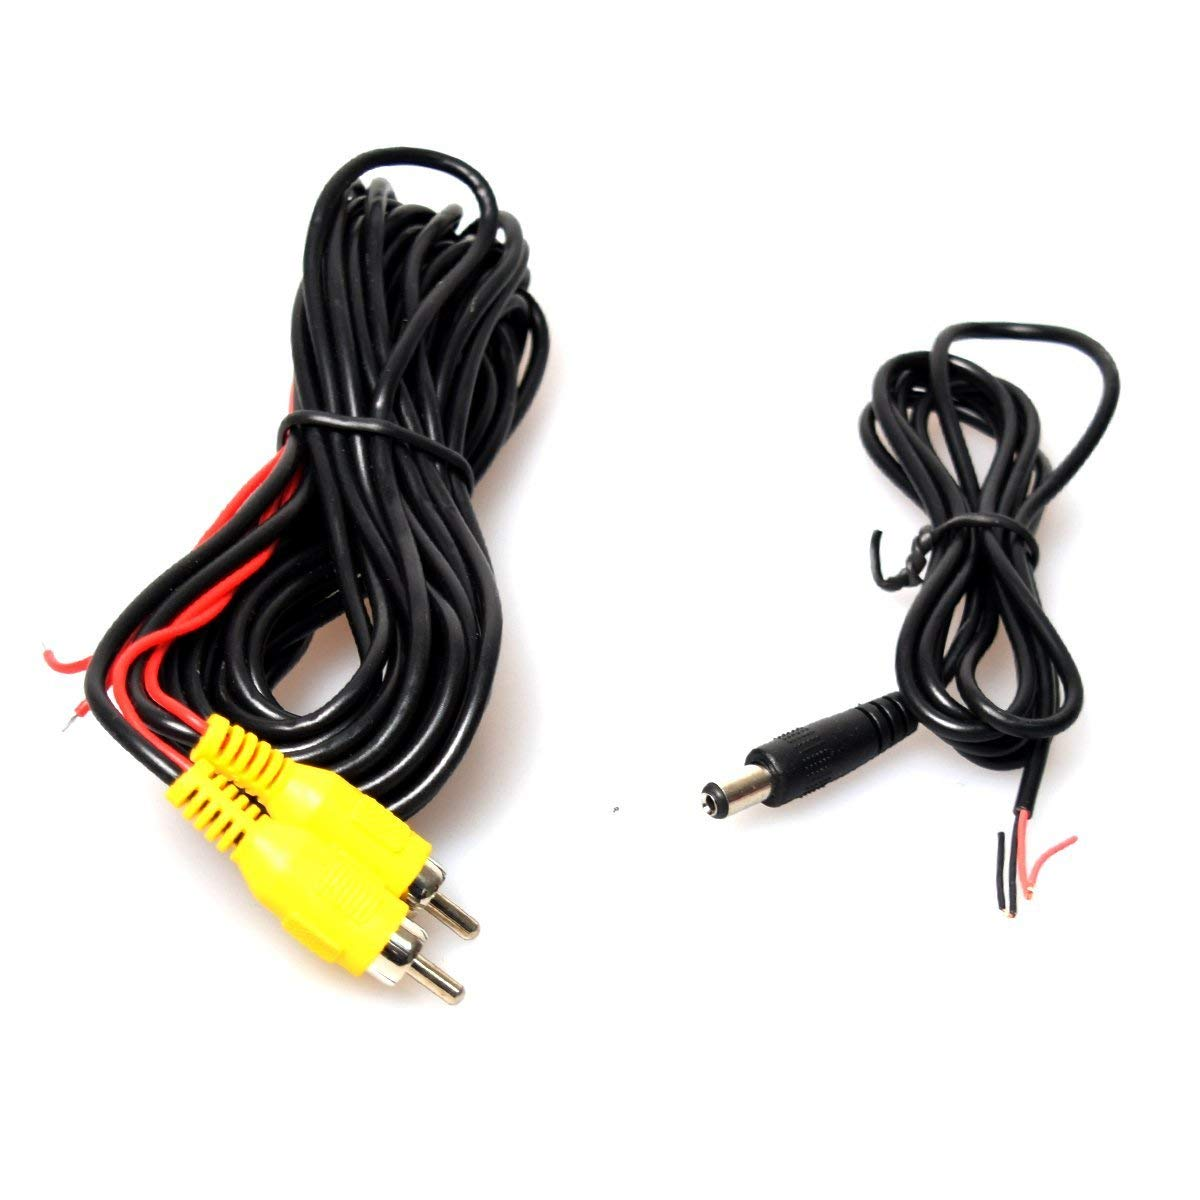 20FT RCA Video Extension Cable Automatic IR//LED Night Vision EKYLIN L662 Car Auto Automotive Rear View Backup Camera Free 6M